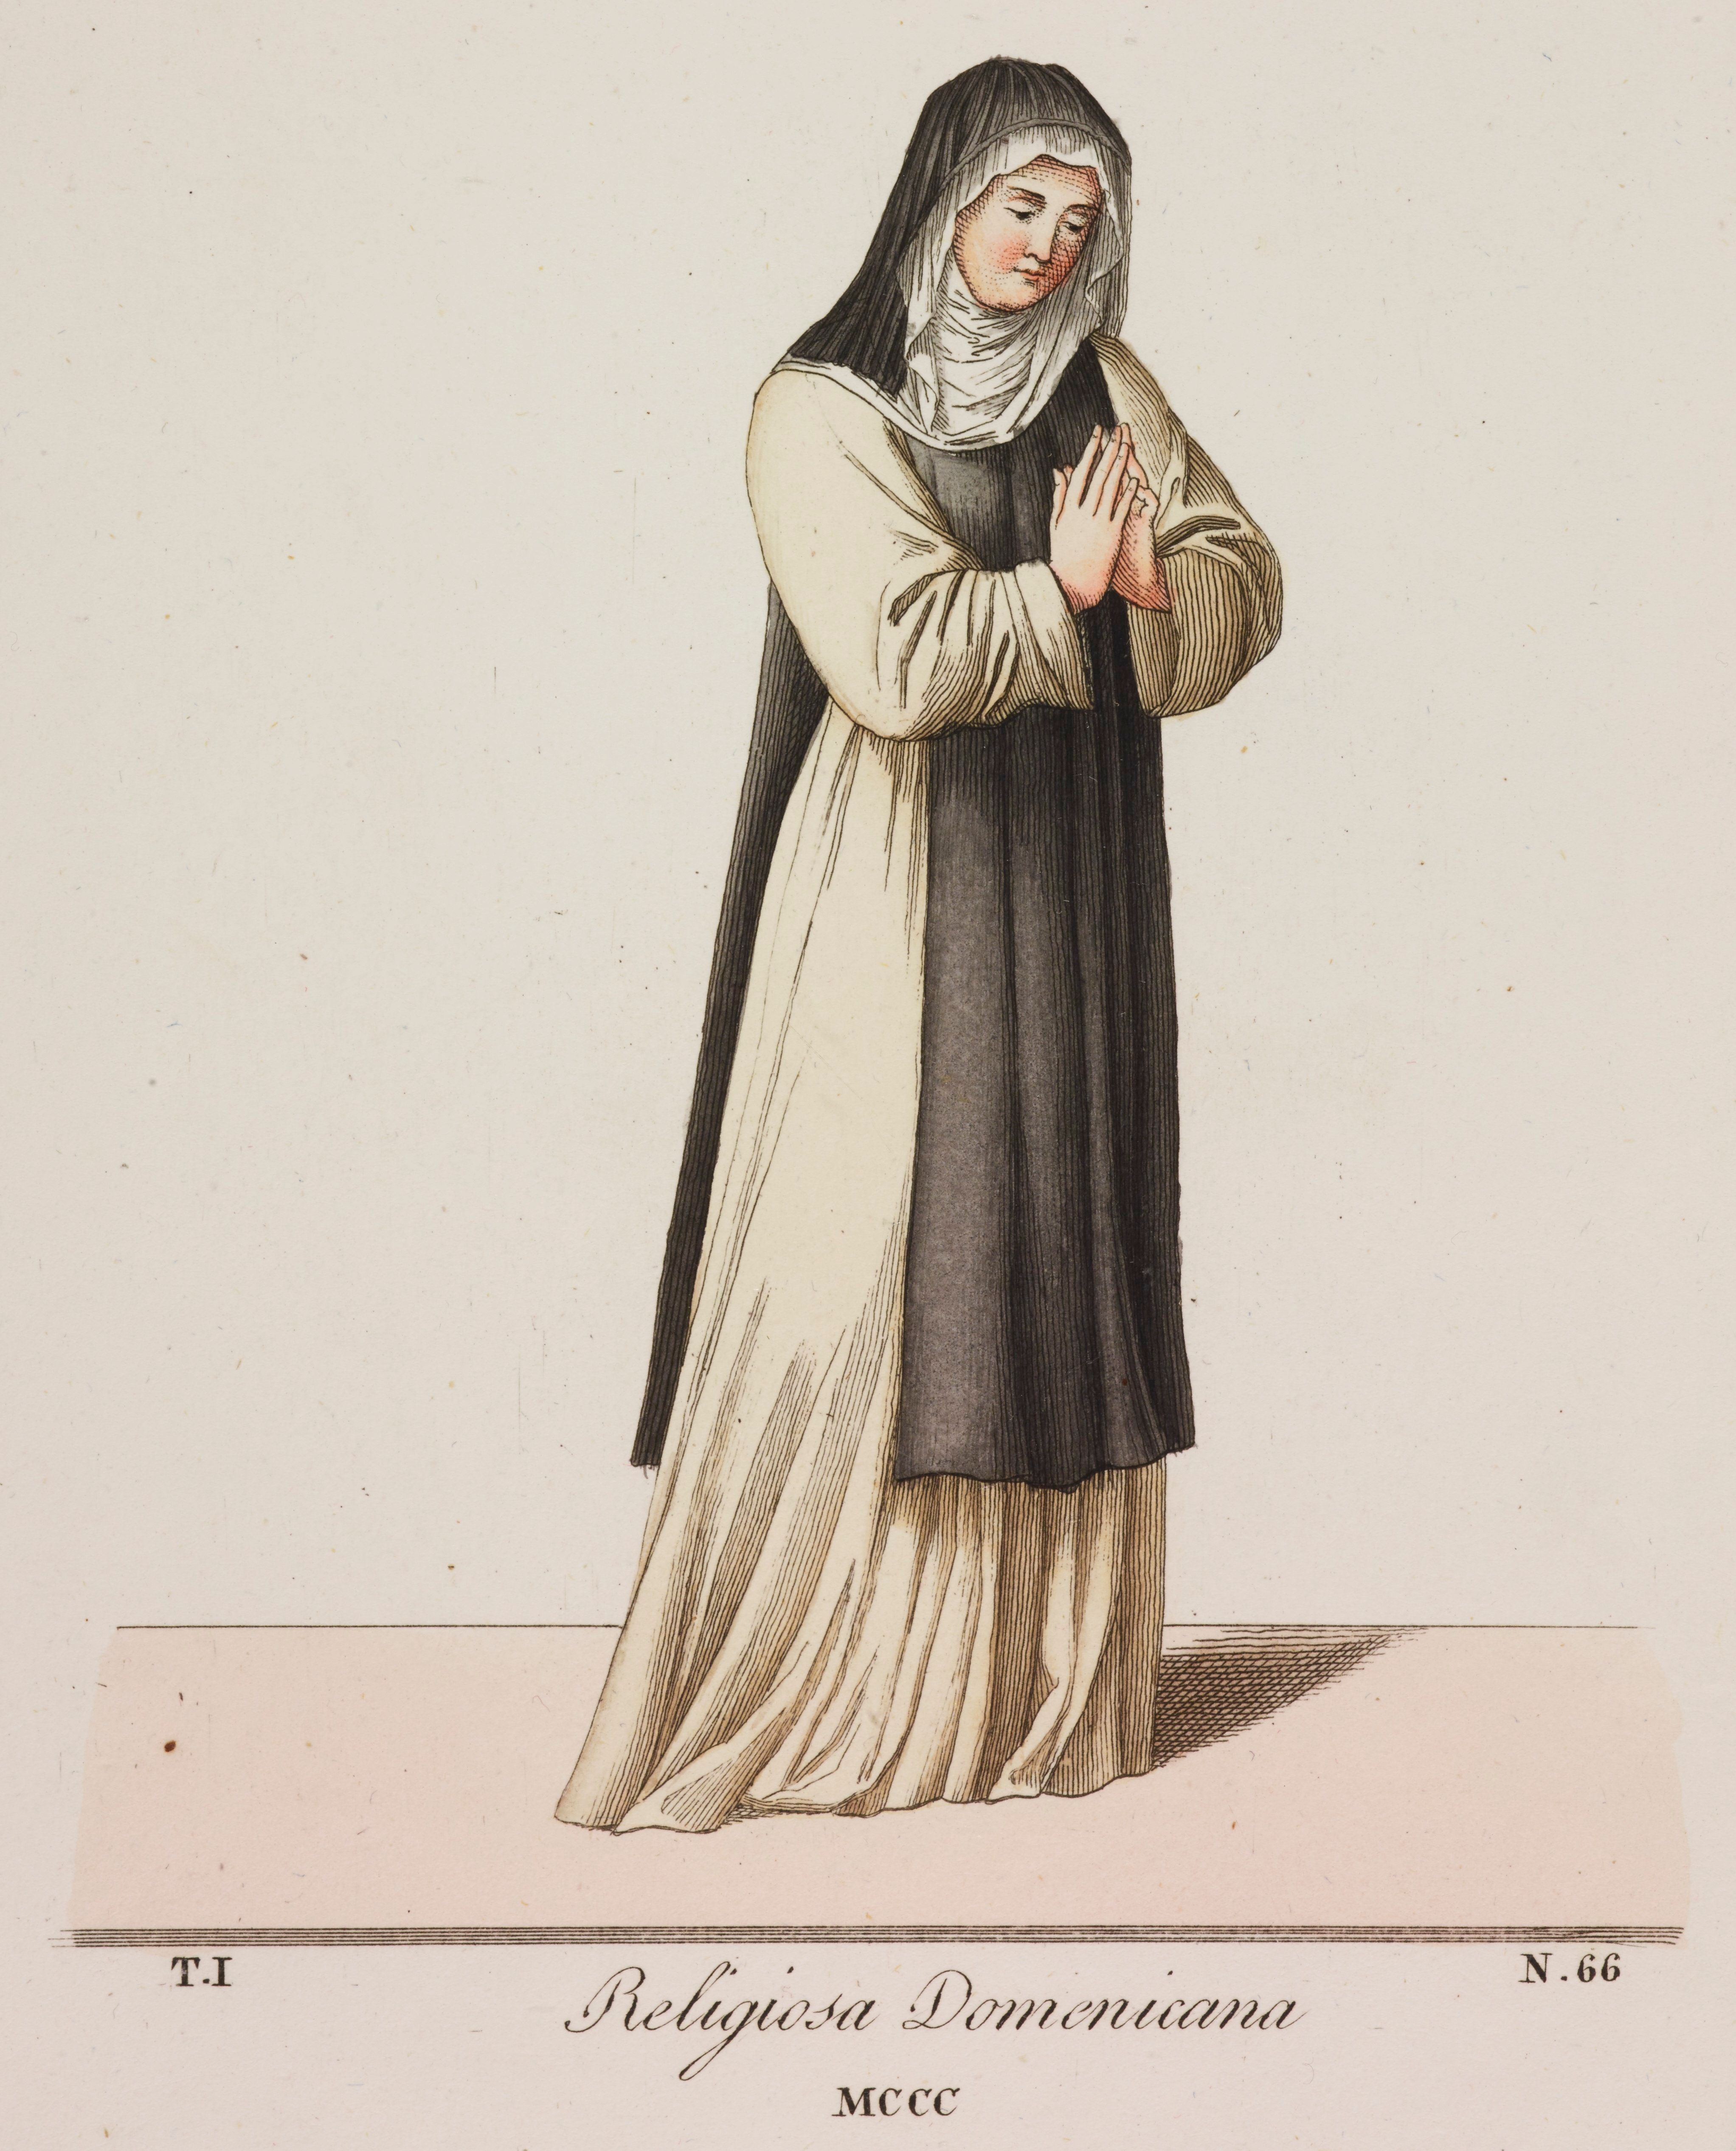 The 14th-century Dominican nun is depicted in this painting. Joan of Leeds was a